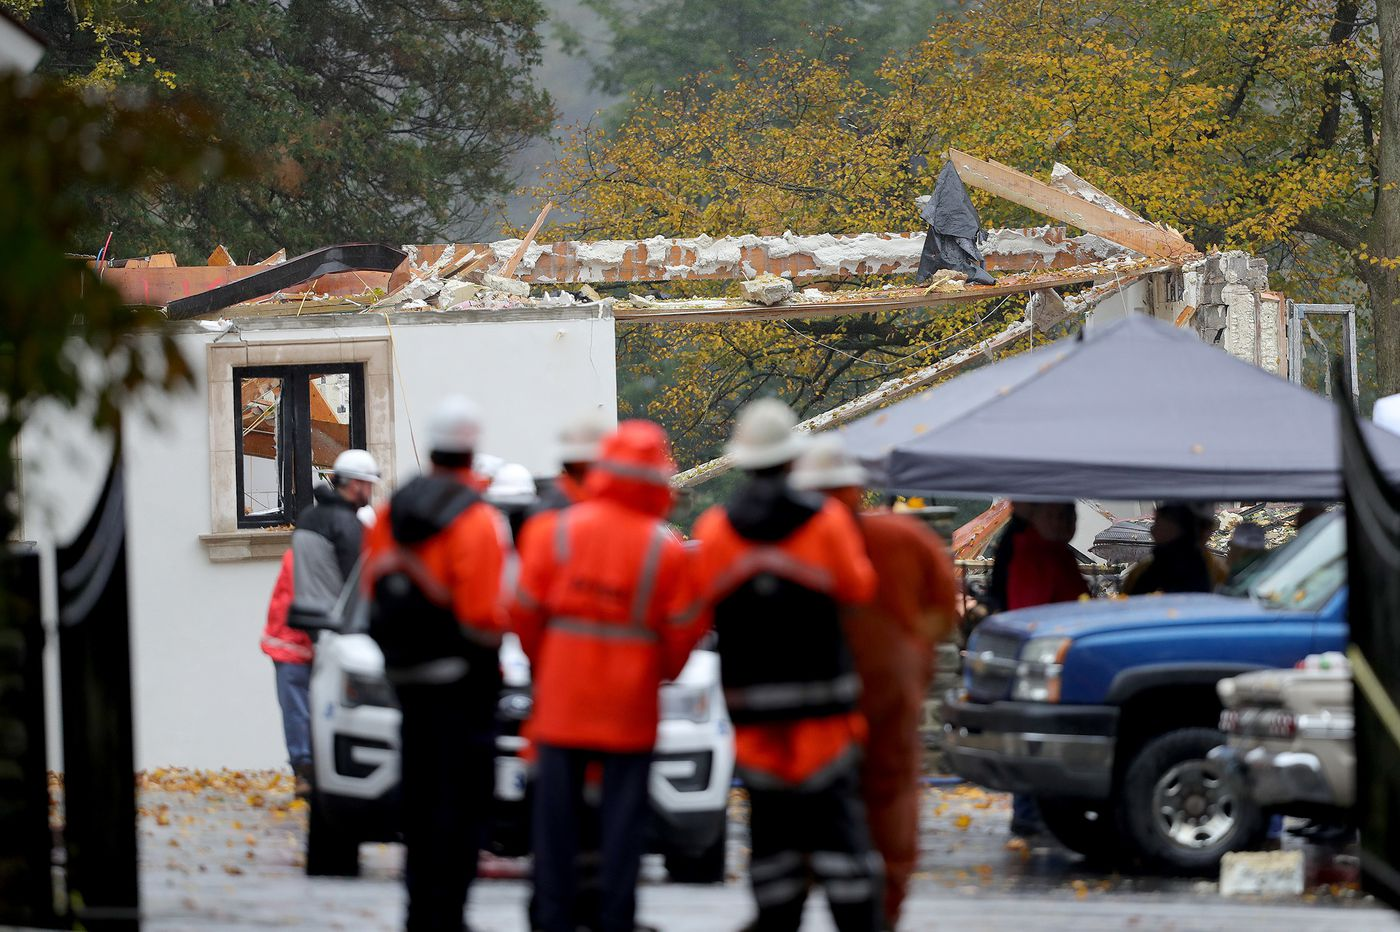 A day after Gladwyne home explosion, questions remain about what caused the blast